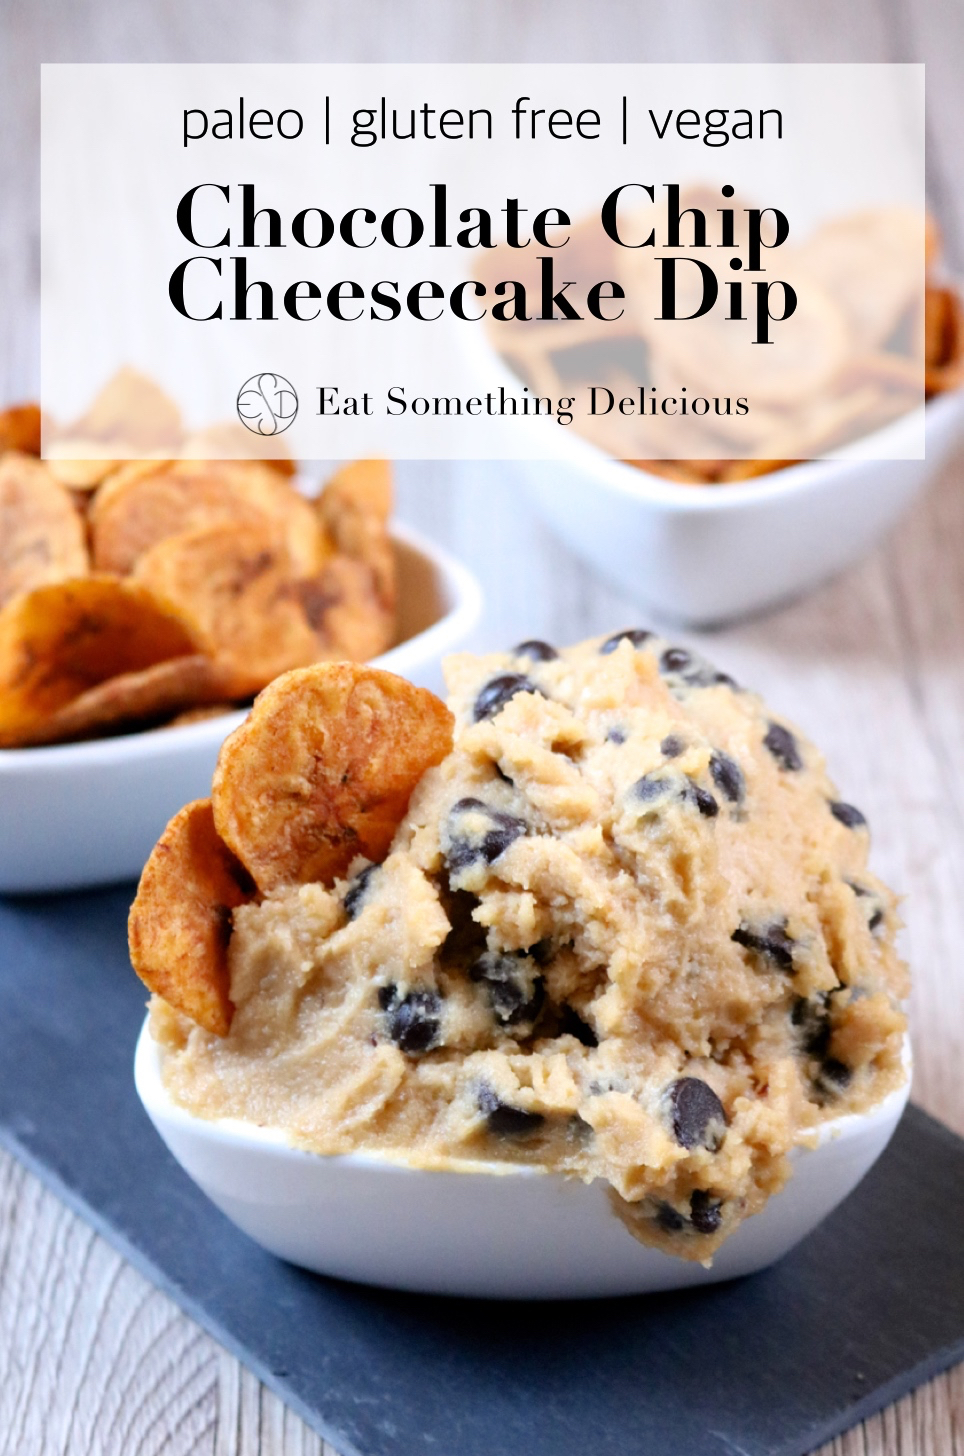 Chocolate Chip Cheesecake Dip | A dairy free, paleo, vegan version of chocolate chip cheesecake dip with cinnamon dusted plantain chips for dipping in place of graham crackers. | eatsomethingdelicious.com